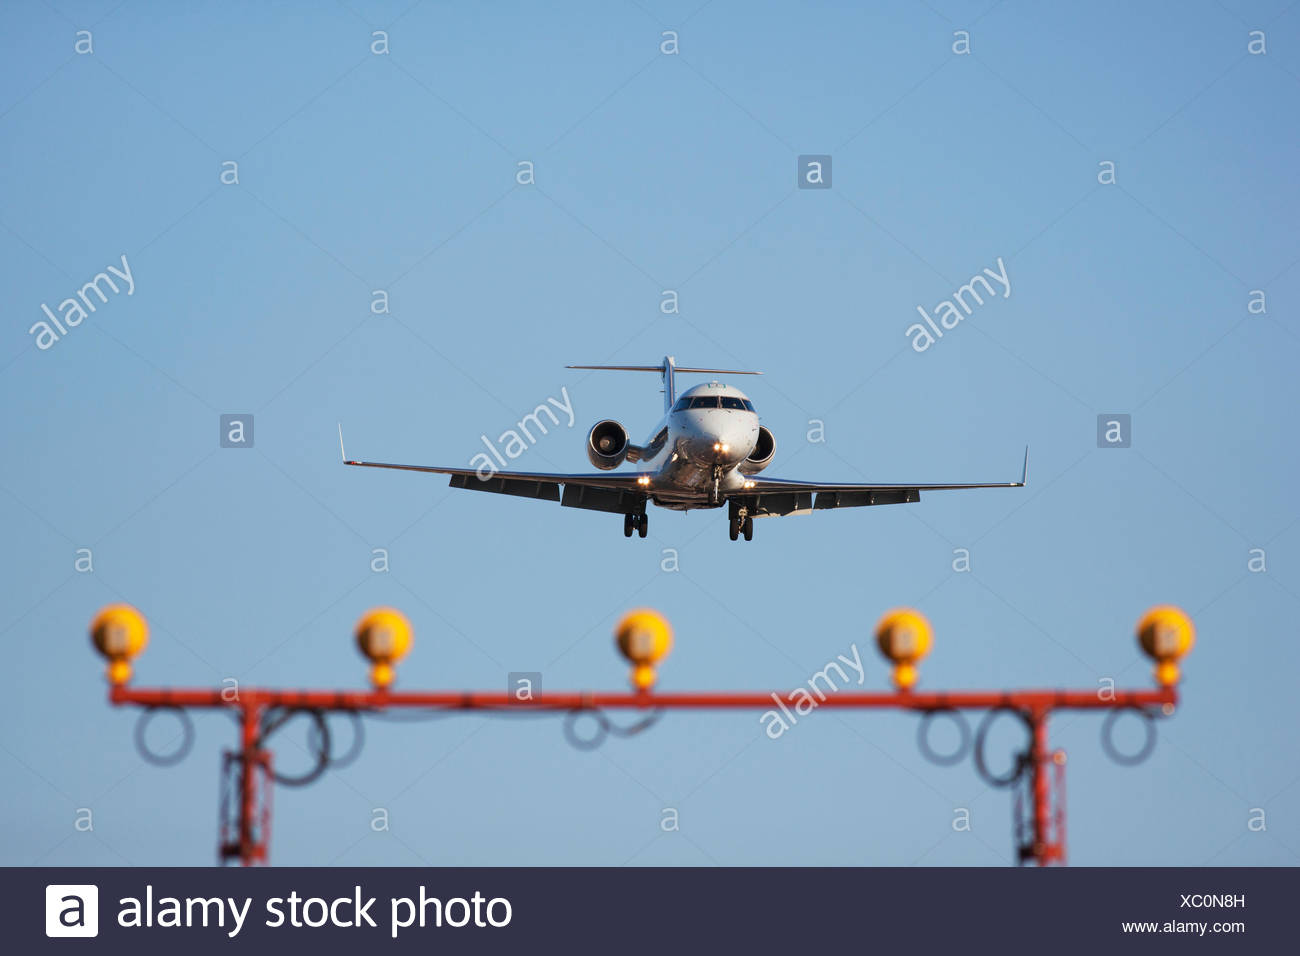 A Bombardier CRJ-100 Regional Jet on approach to Lester B